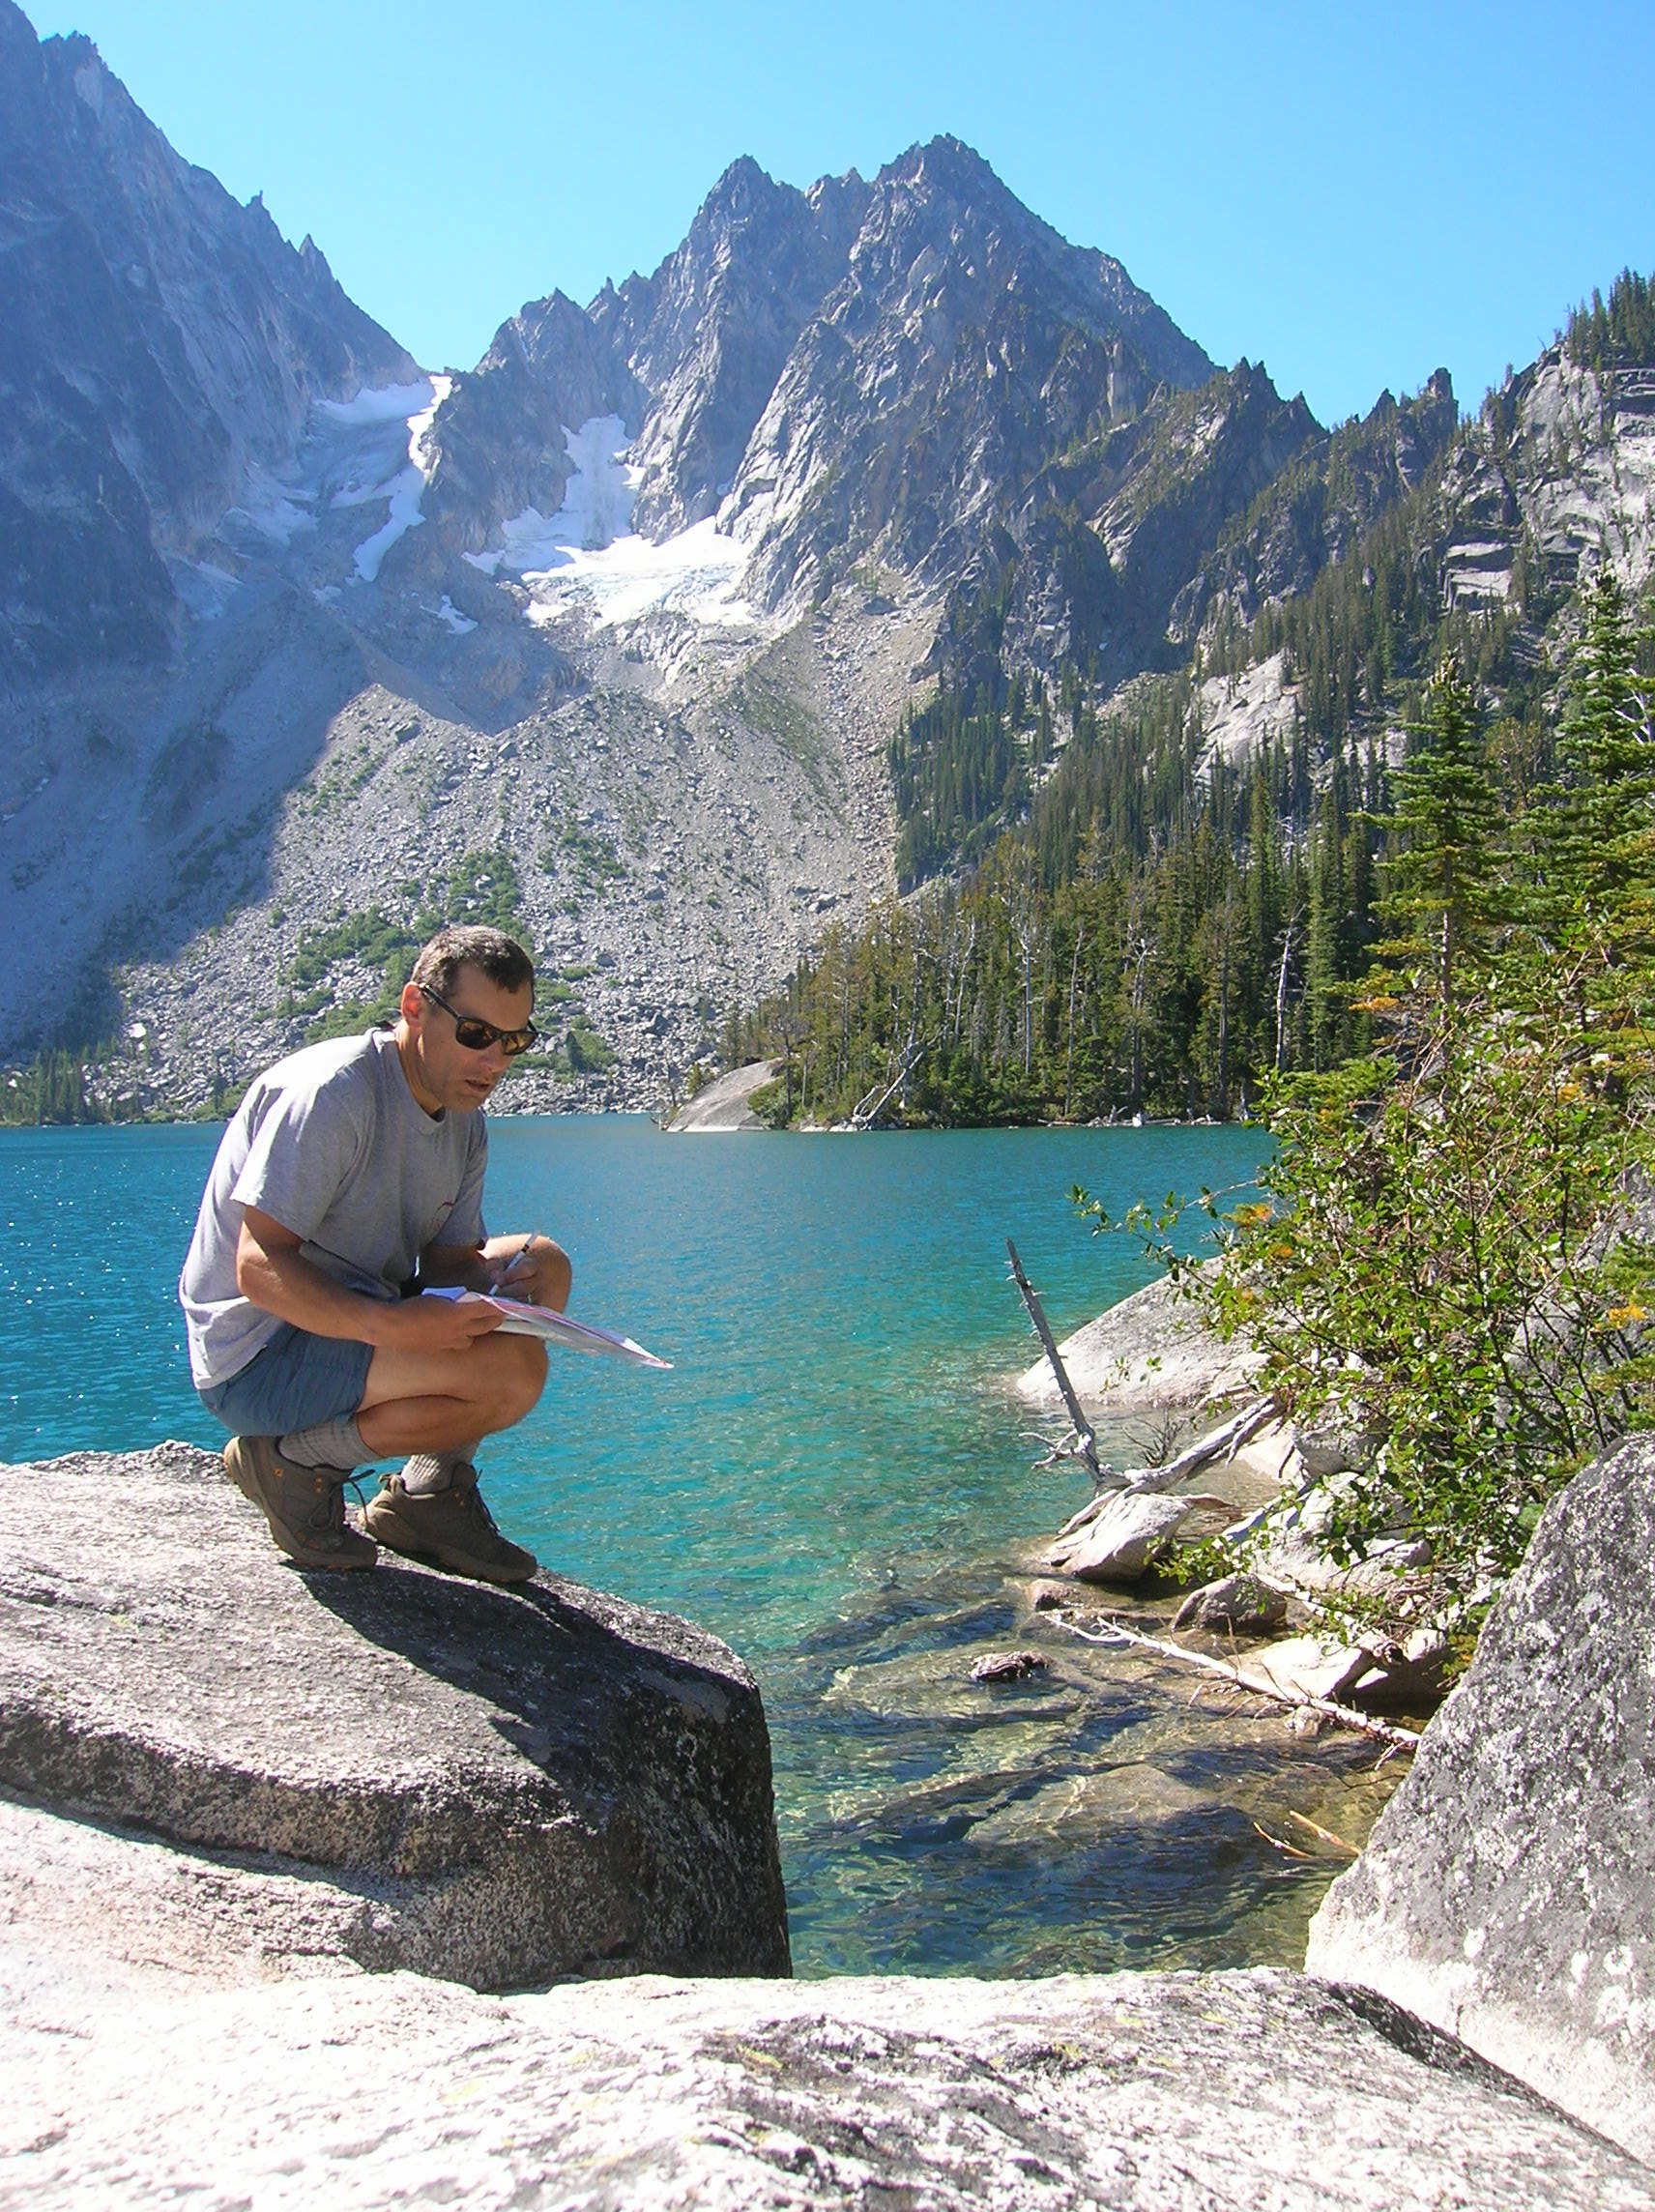 Craig researching the Central Cascades Book at Colchuck Lake, WA